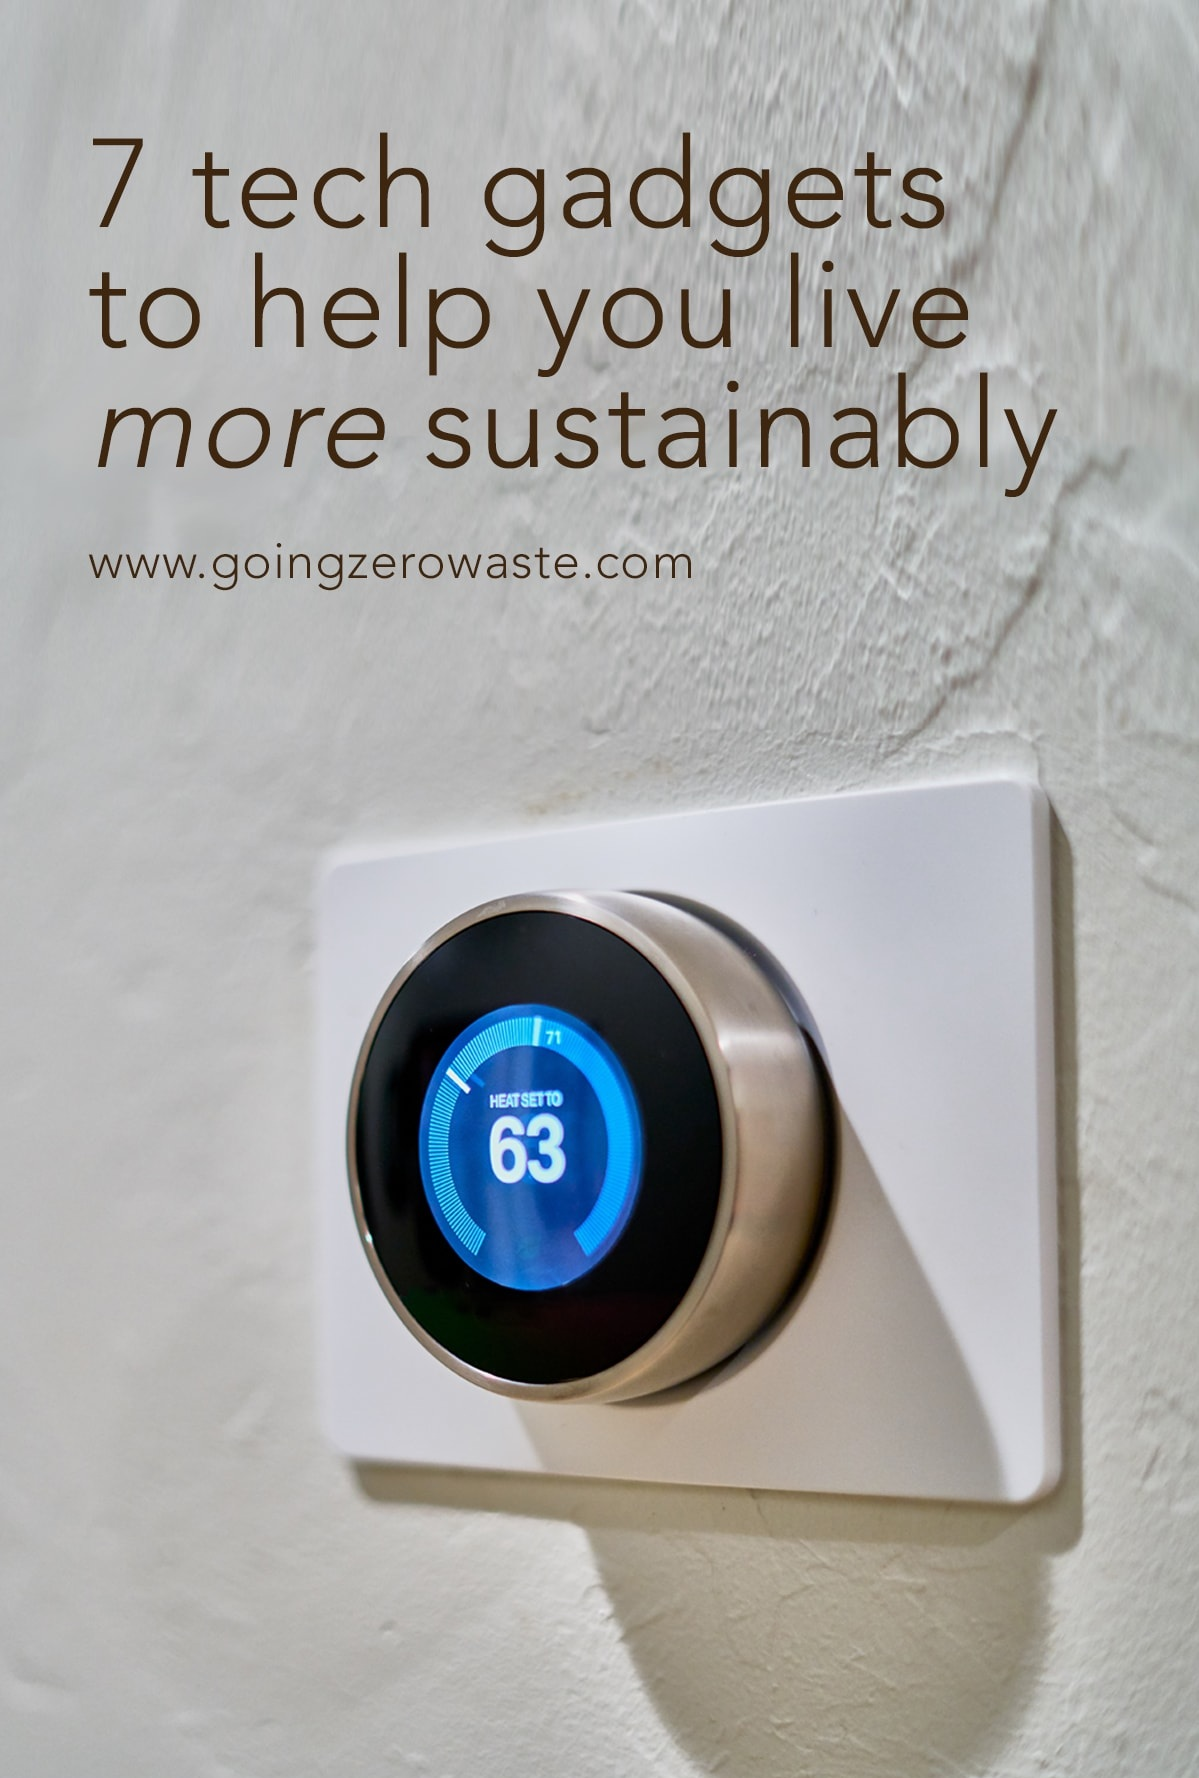 7+ways+tech+can+help+you+live+more+sustainably+from+www.goingzerowaste.jpg